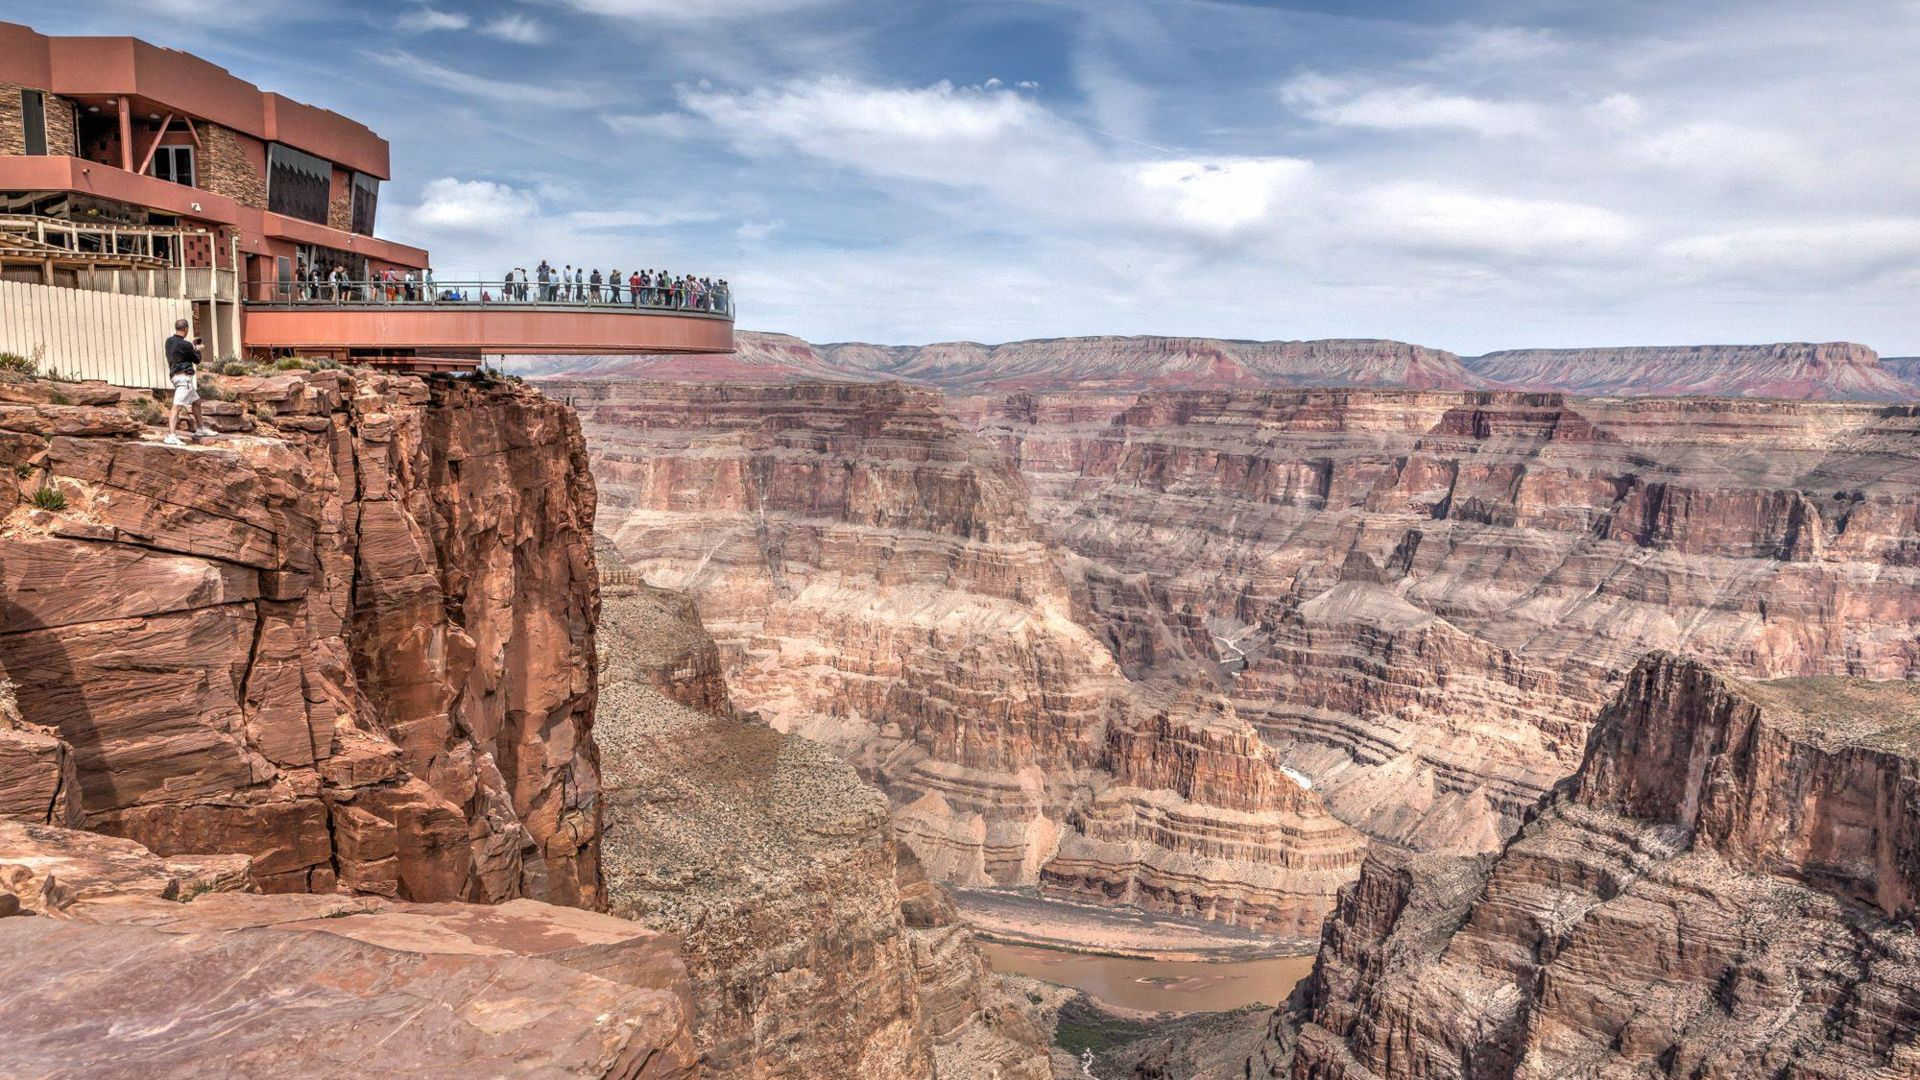 People on the Skywalk over the vast landscape of the Grand Canyon's west rim